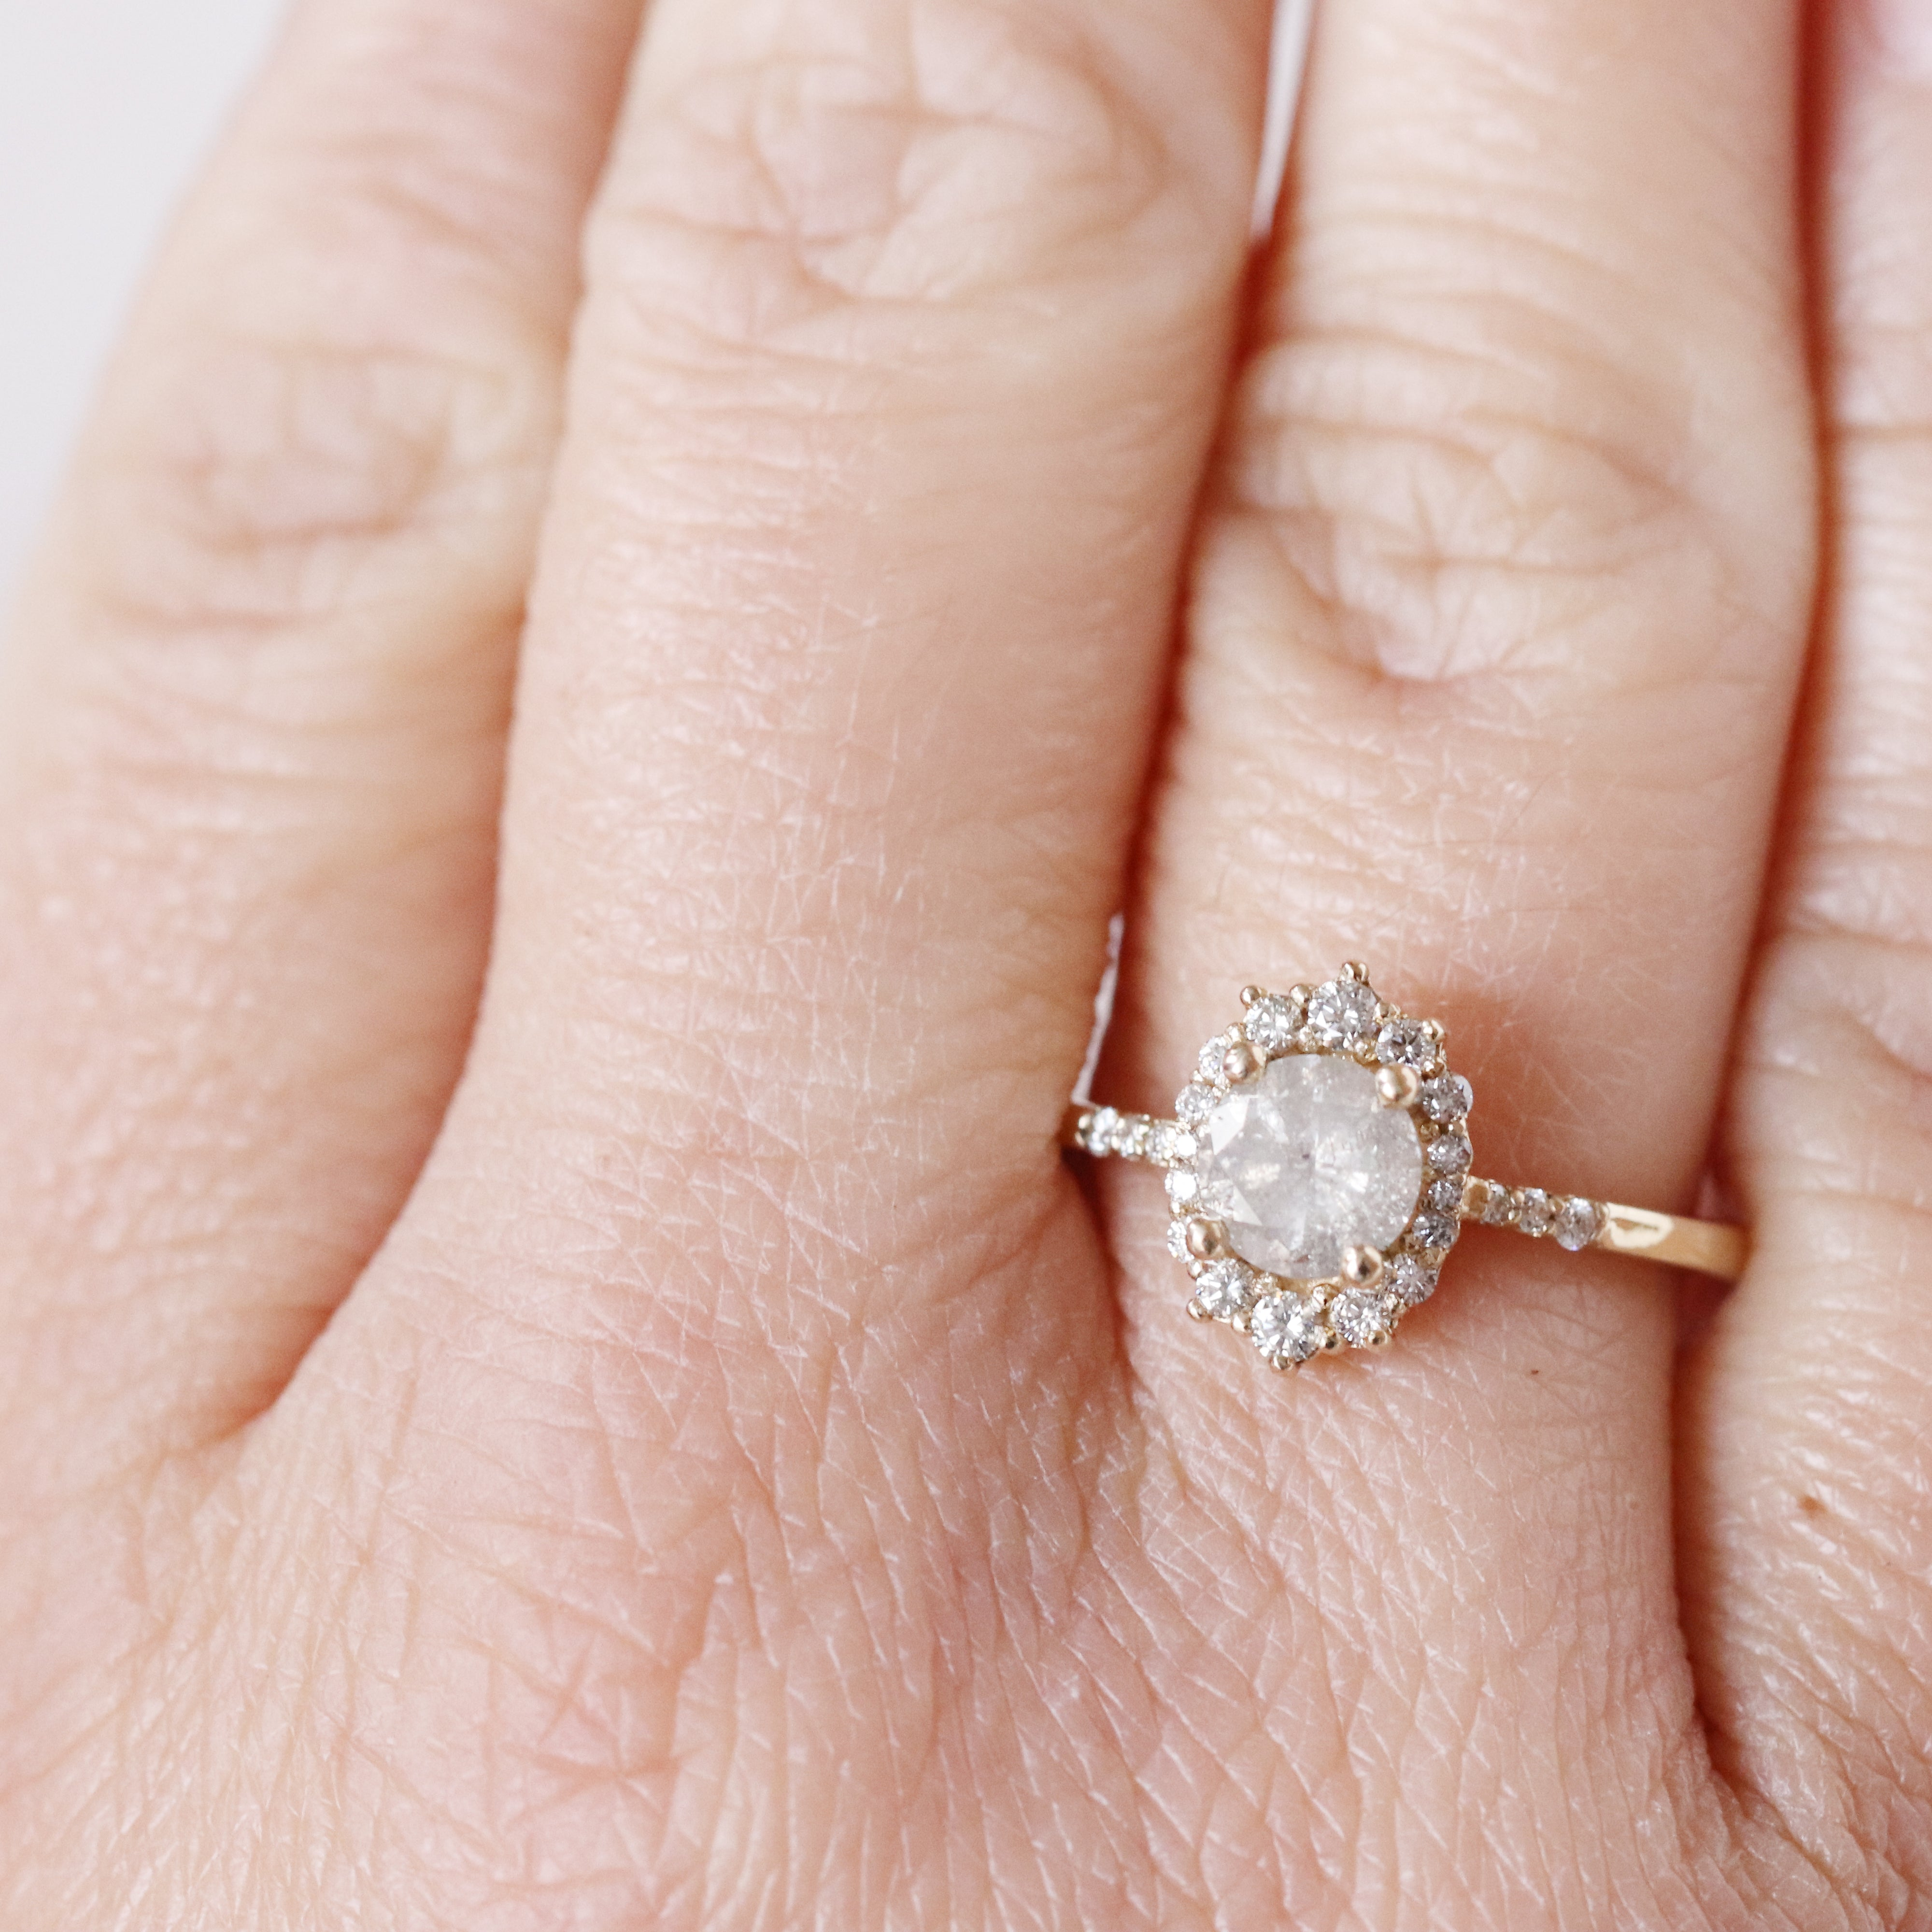 Grace Ring with a .88 Carat Celestial Diamond and Side Stones and Halo in 14k Yellow Gold - Ready to Size and Ship - Salt & Pepper Celestial Diamond Engagement Rings and Wedding Bands  by Midwinter Co.